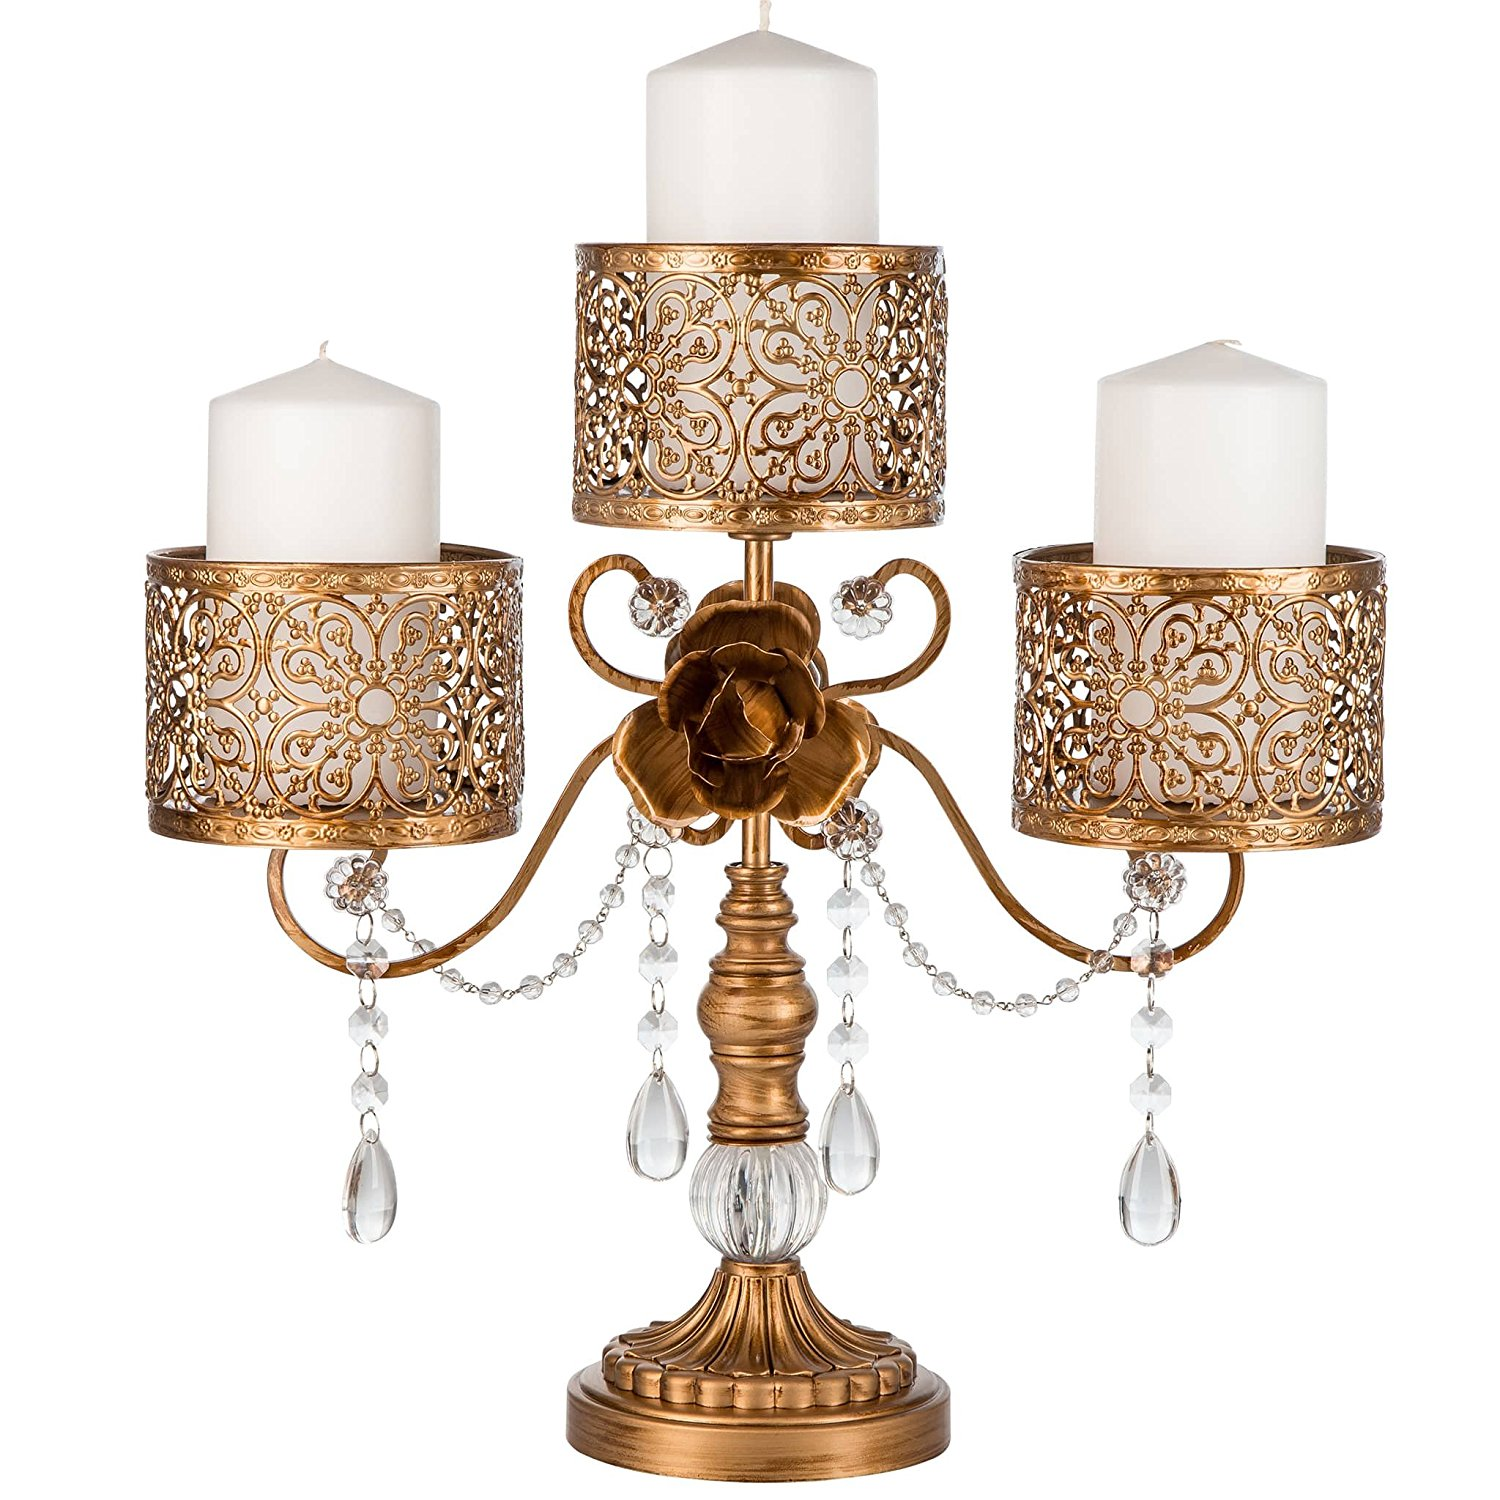 antique look candelabra with scrollwork detail and rose accent with candles